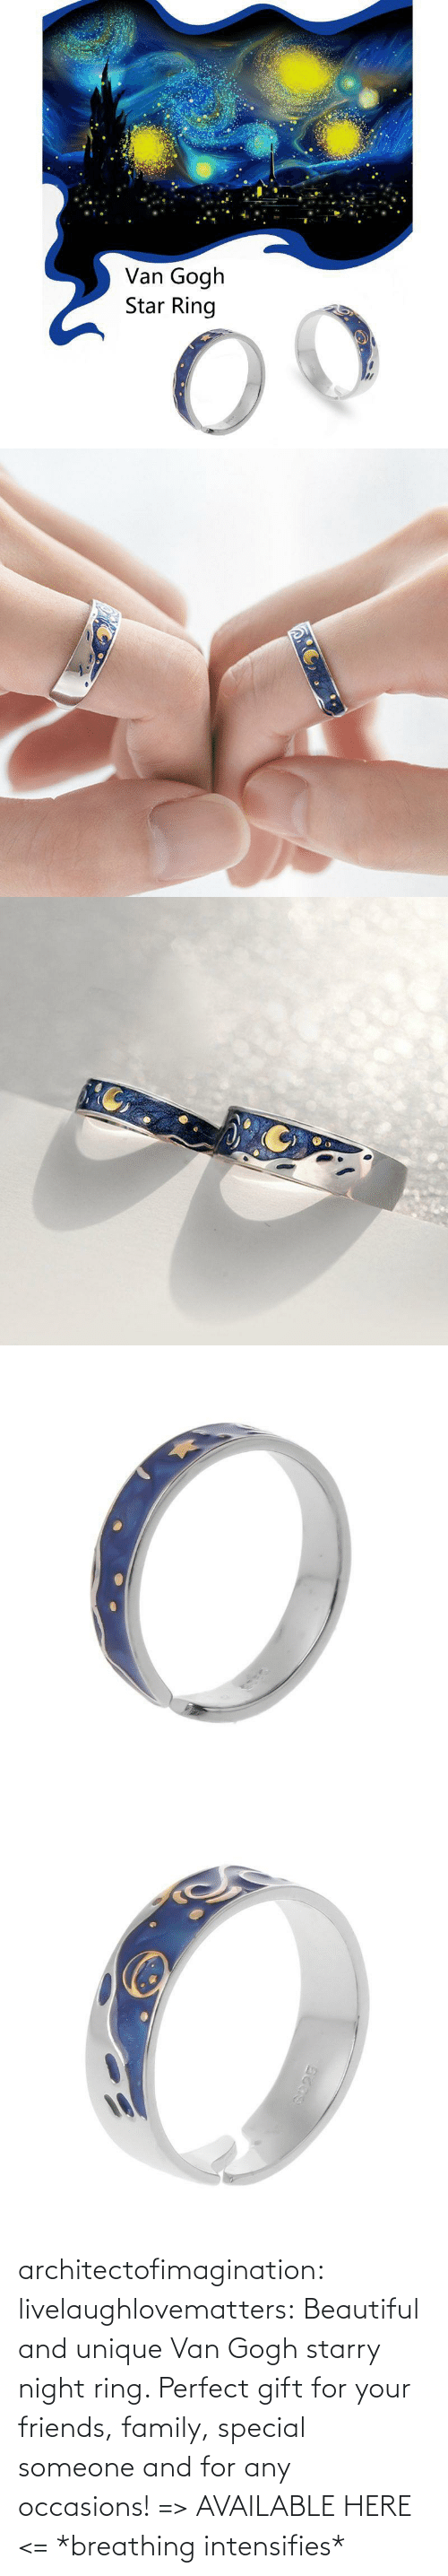 ring: architectofimagination:  livelaughlovematters: Beautiful and unique Van Gogh starry night ring. Perfect gift for your friends, family, special someone and for any occasions! => AVAILABLE HERE <=    *breathing intensifies*